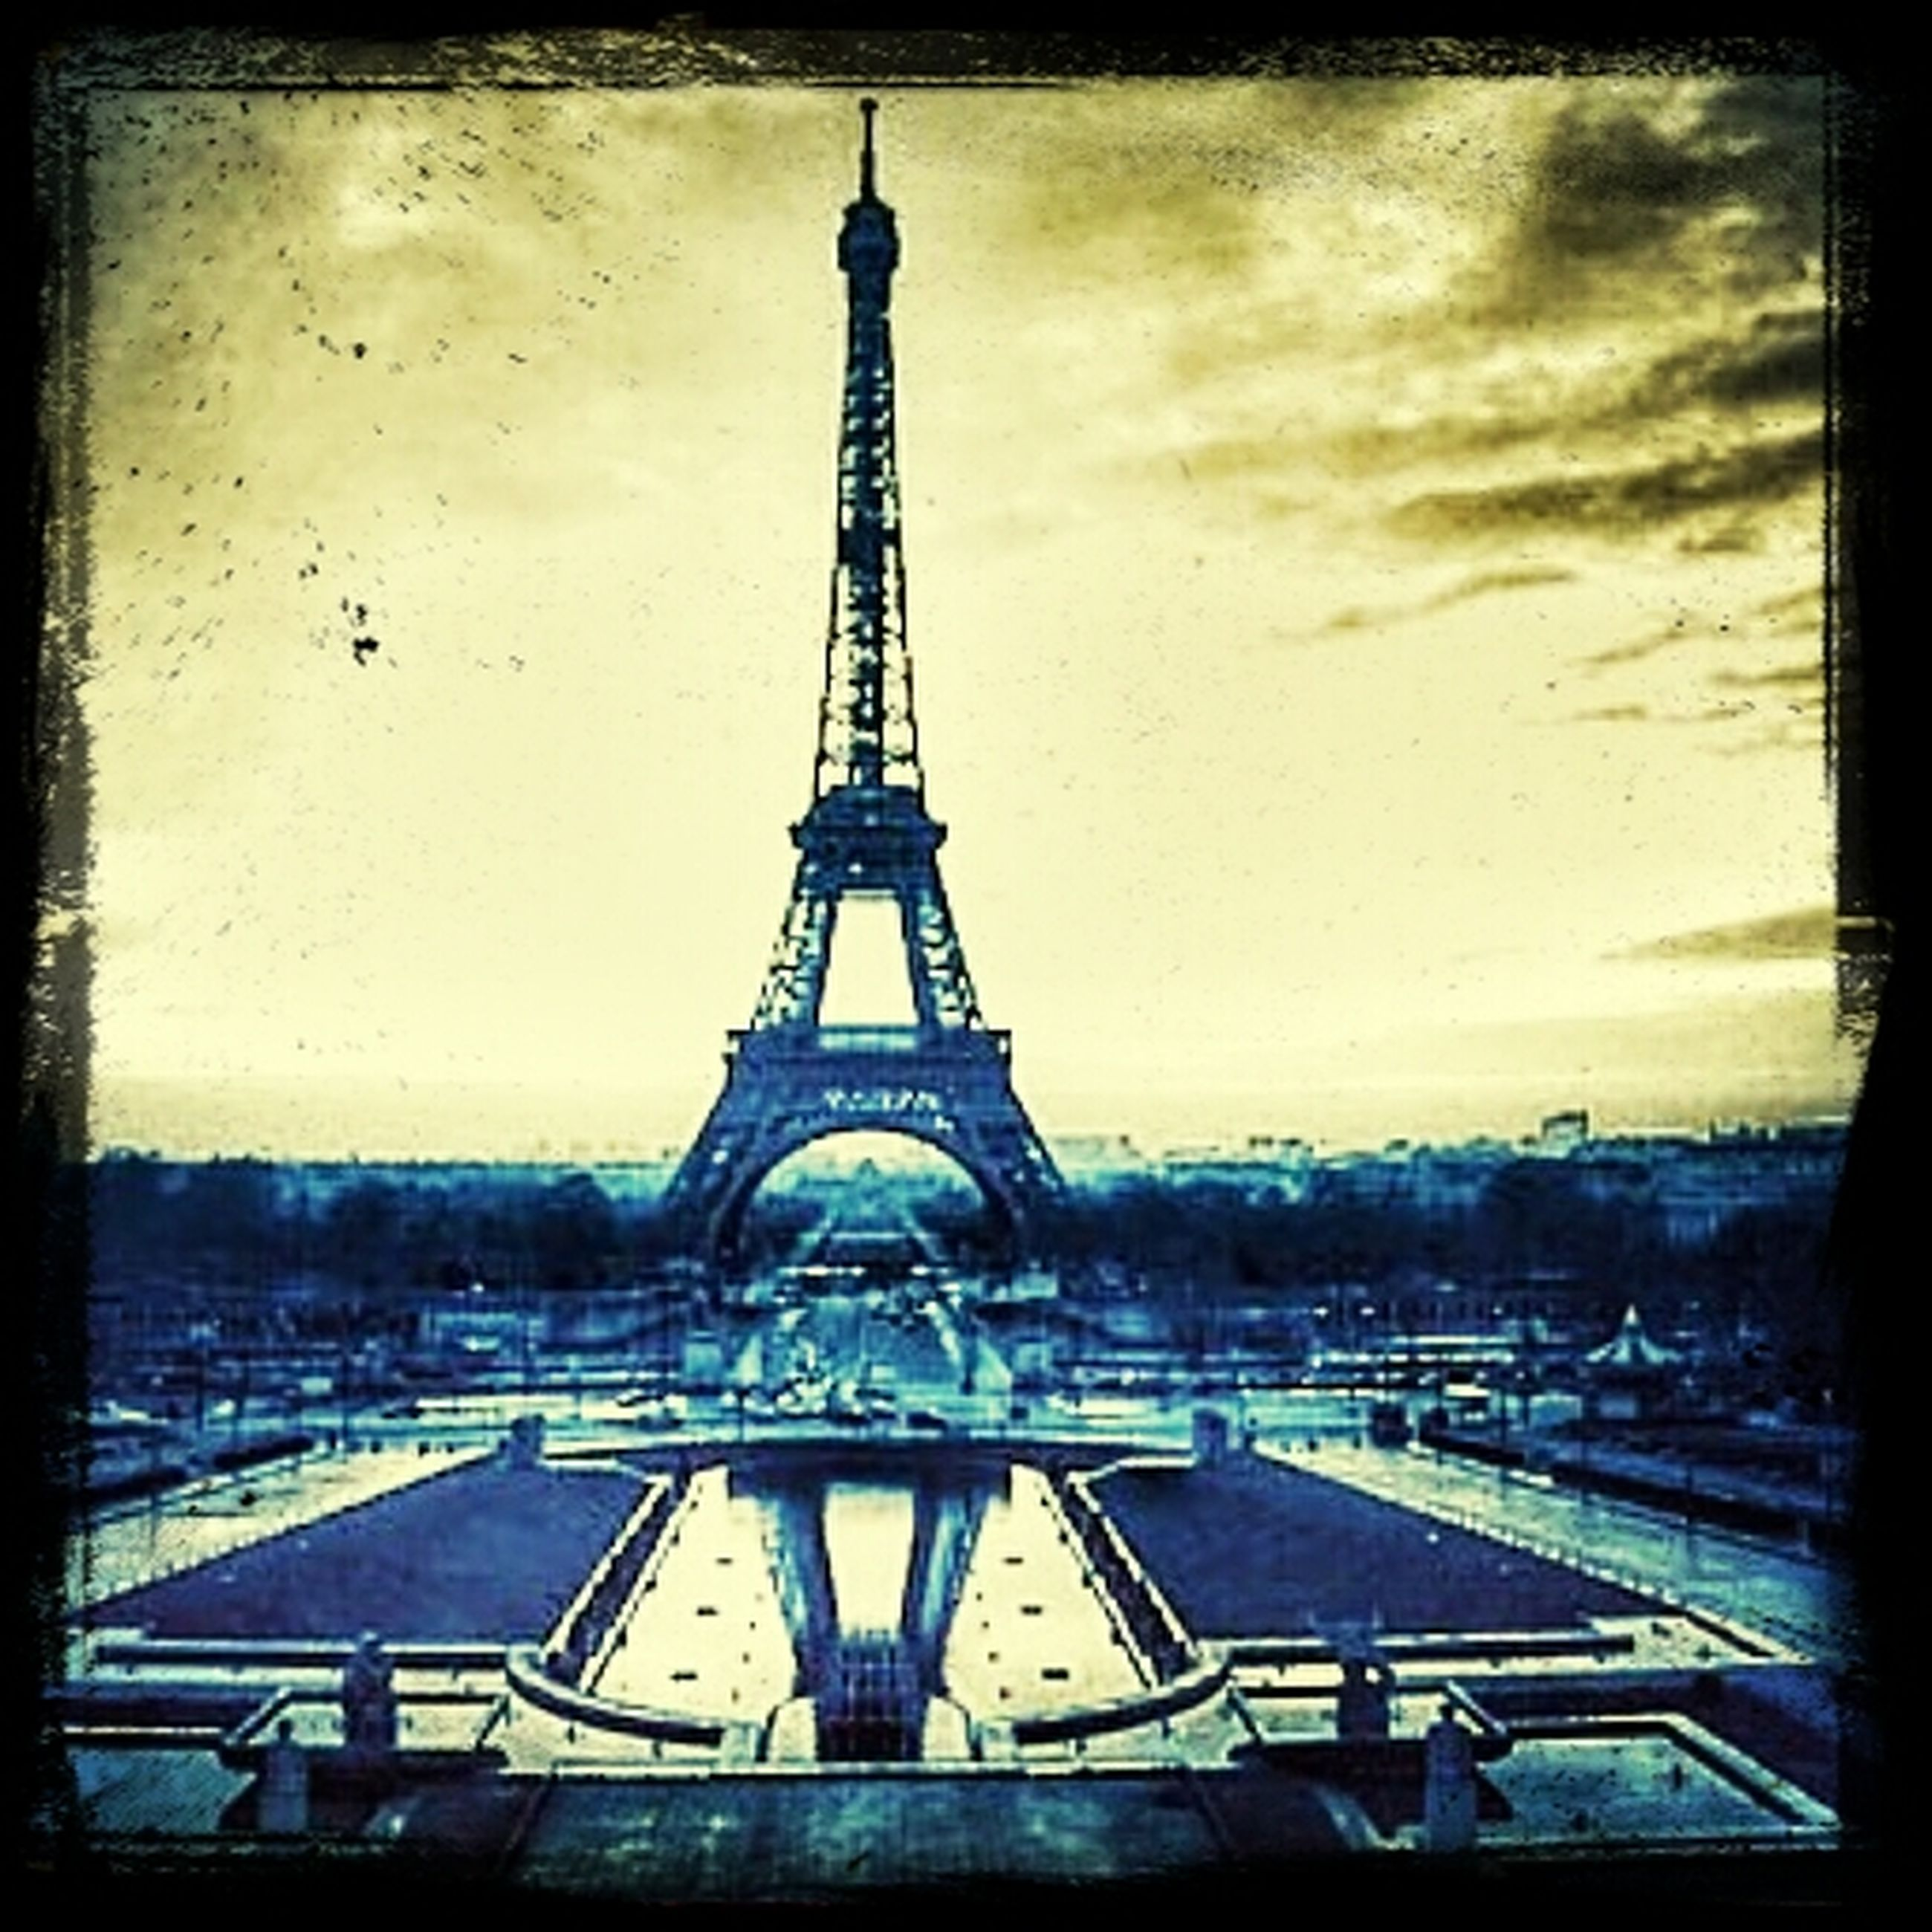 transfer print, eiffel tower, built structure, architecture, auto post production filter, sky, culture, tower, international landmark, famous place, metal, travel destinations, capital cities, tall - high, tourism, city, travel, building exterior, cloud - sky, metallic